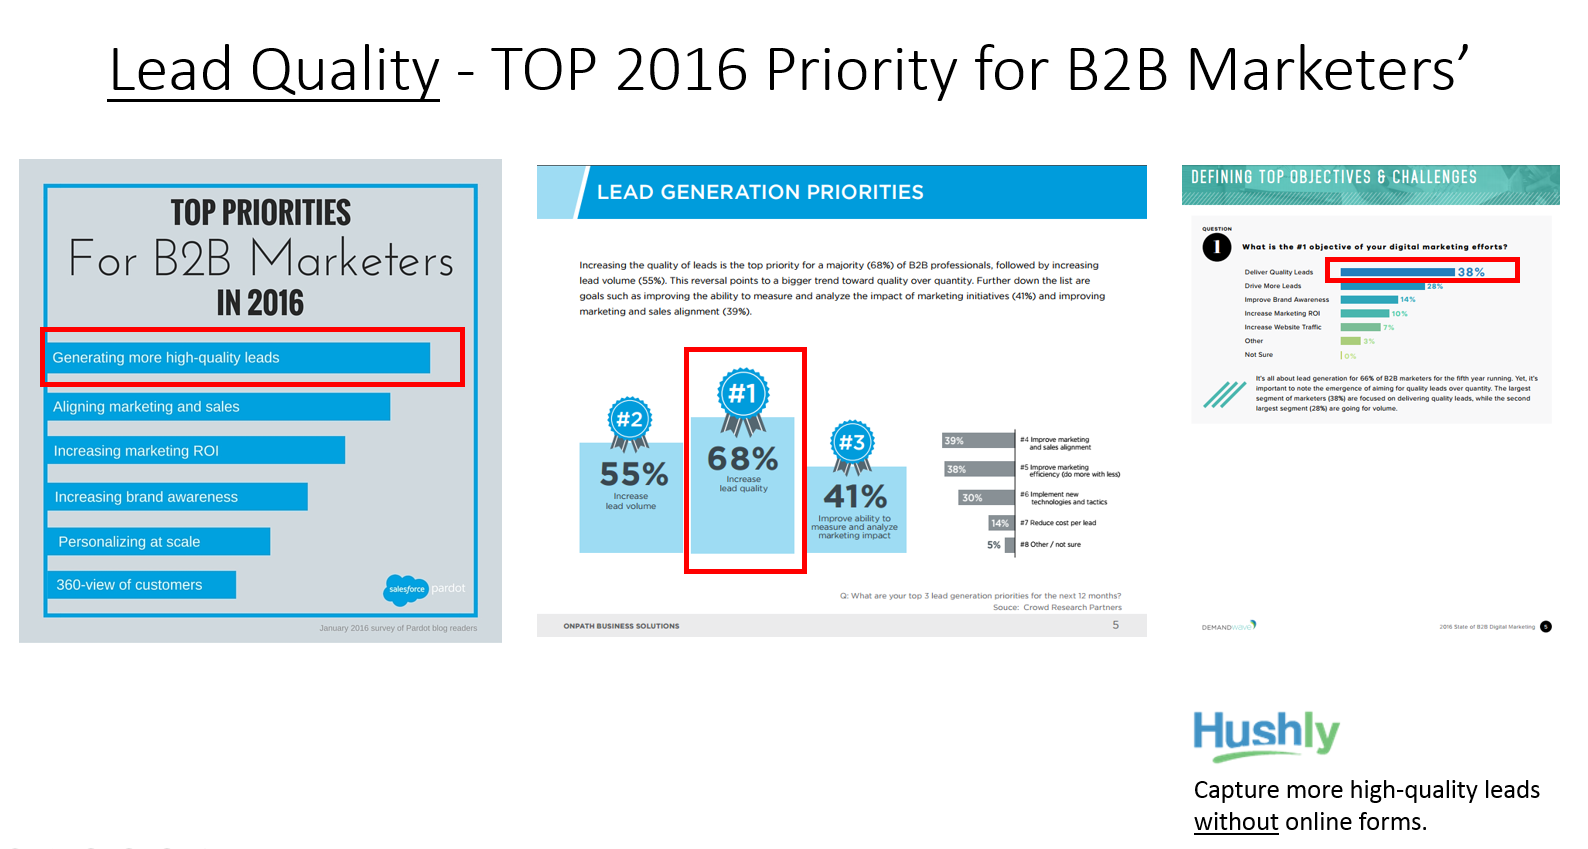 LeadQualityTop2016Priority